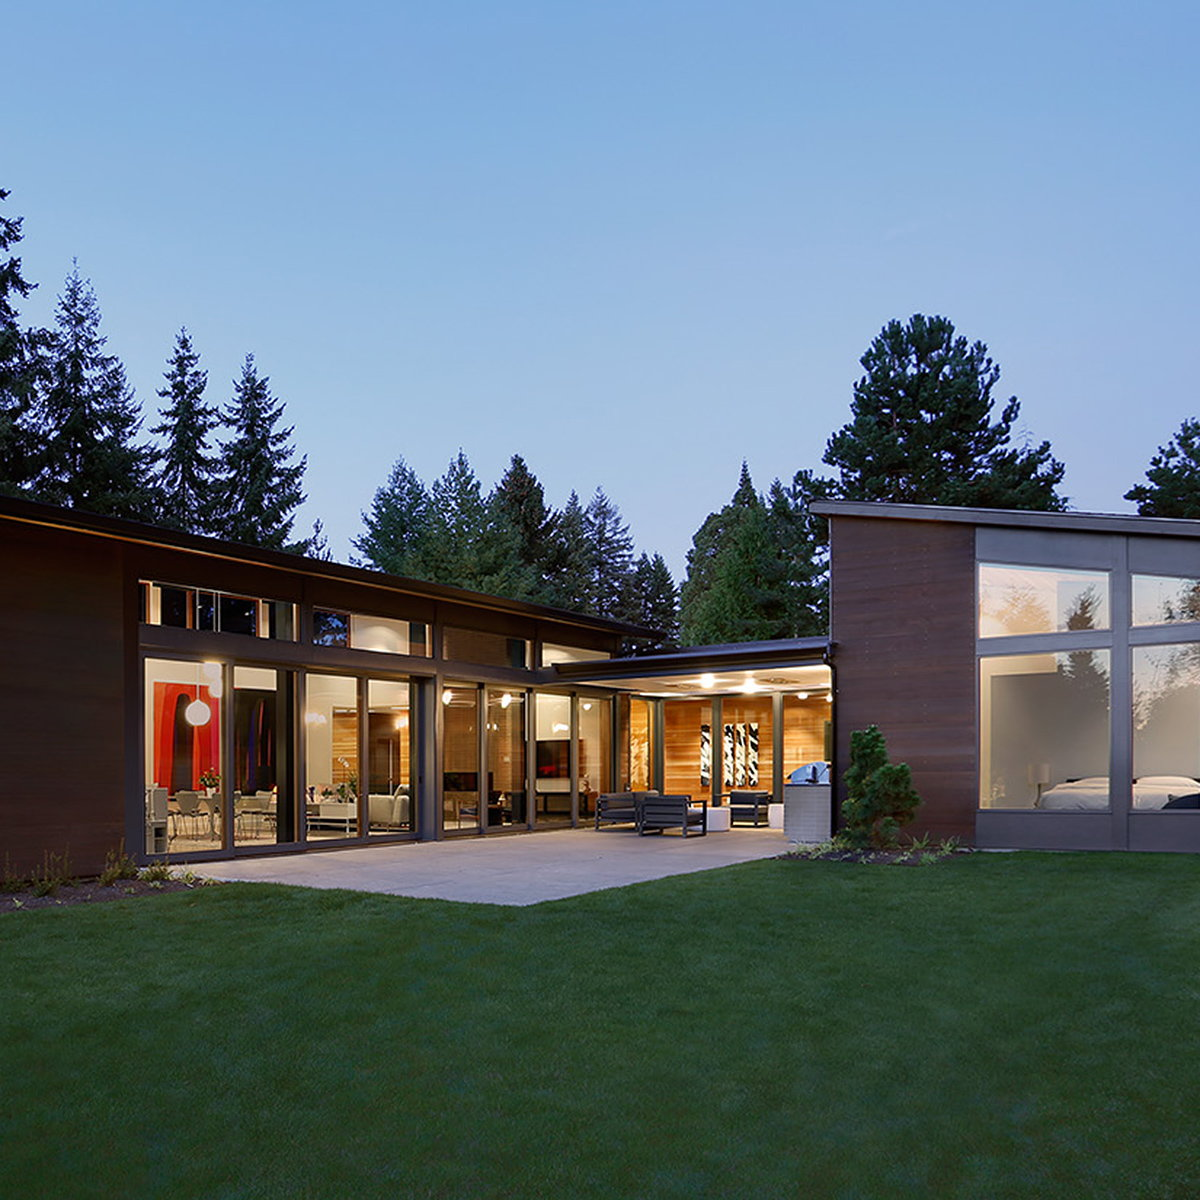 Eulberg Residence by Paul Michael Davis Architects